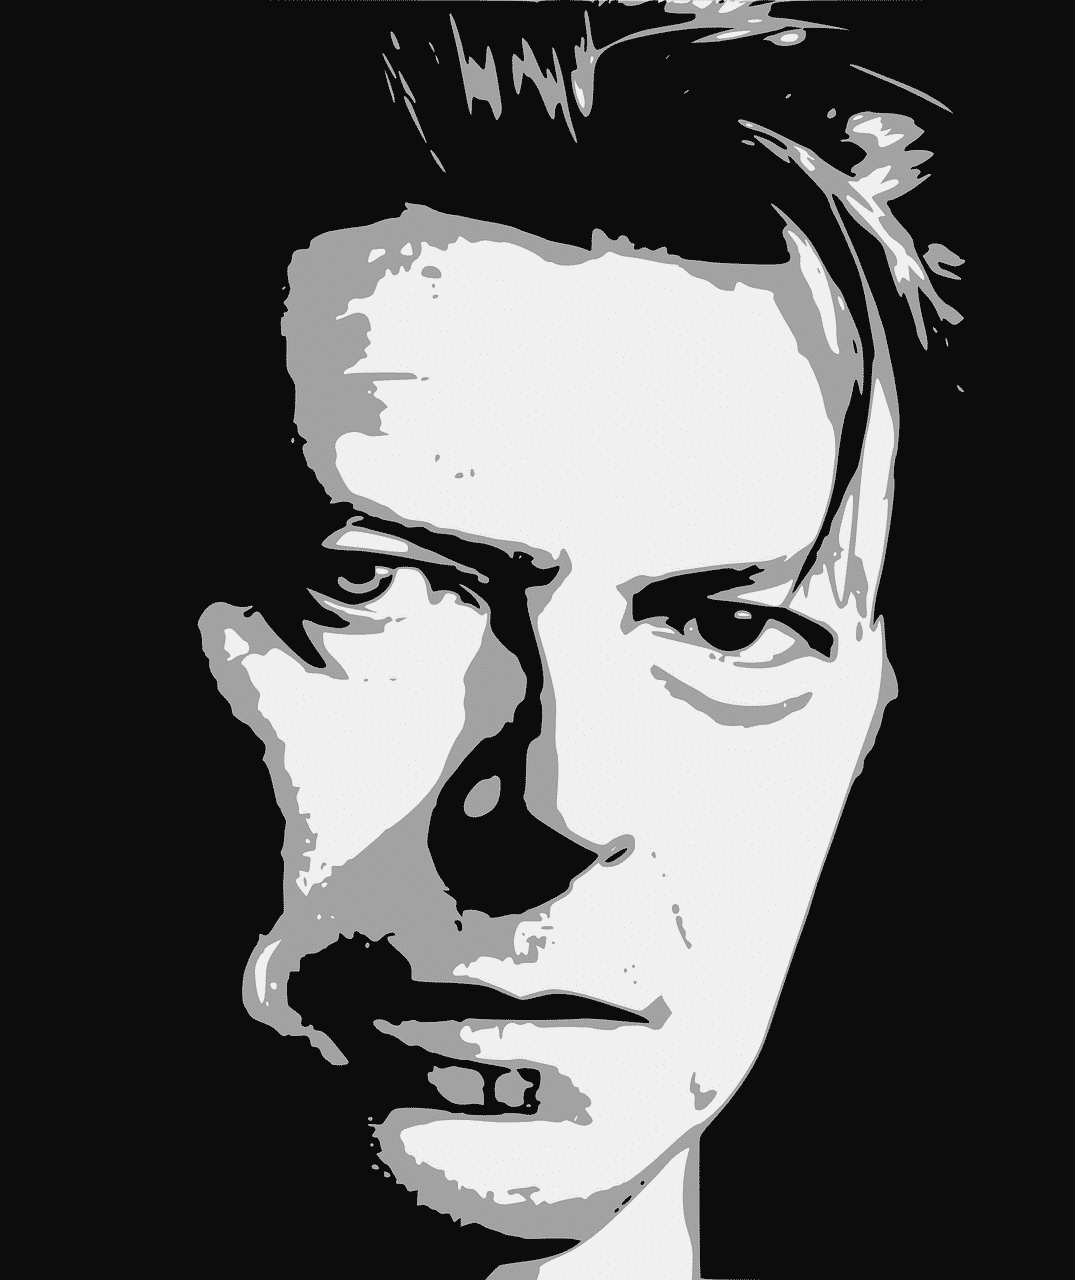 5 Things I Learned From David Bowie